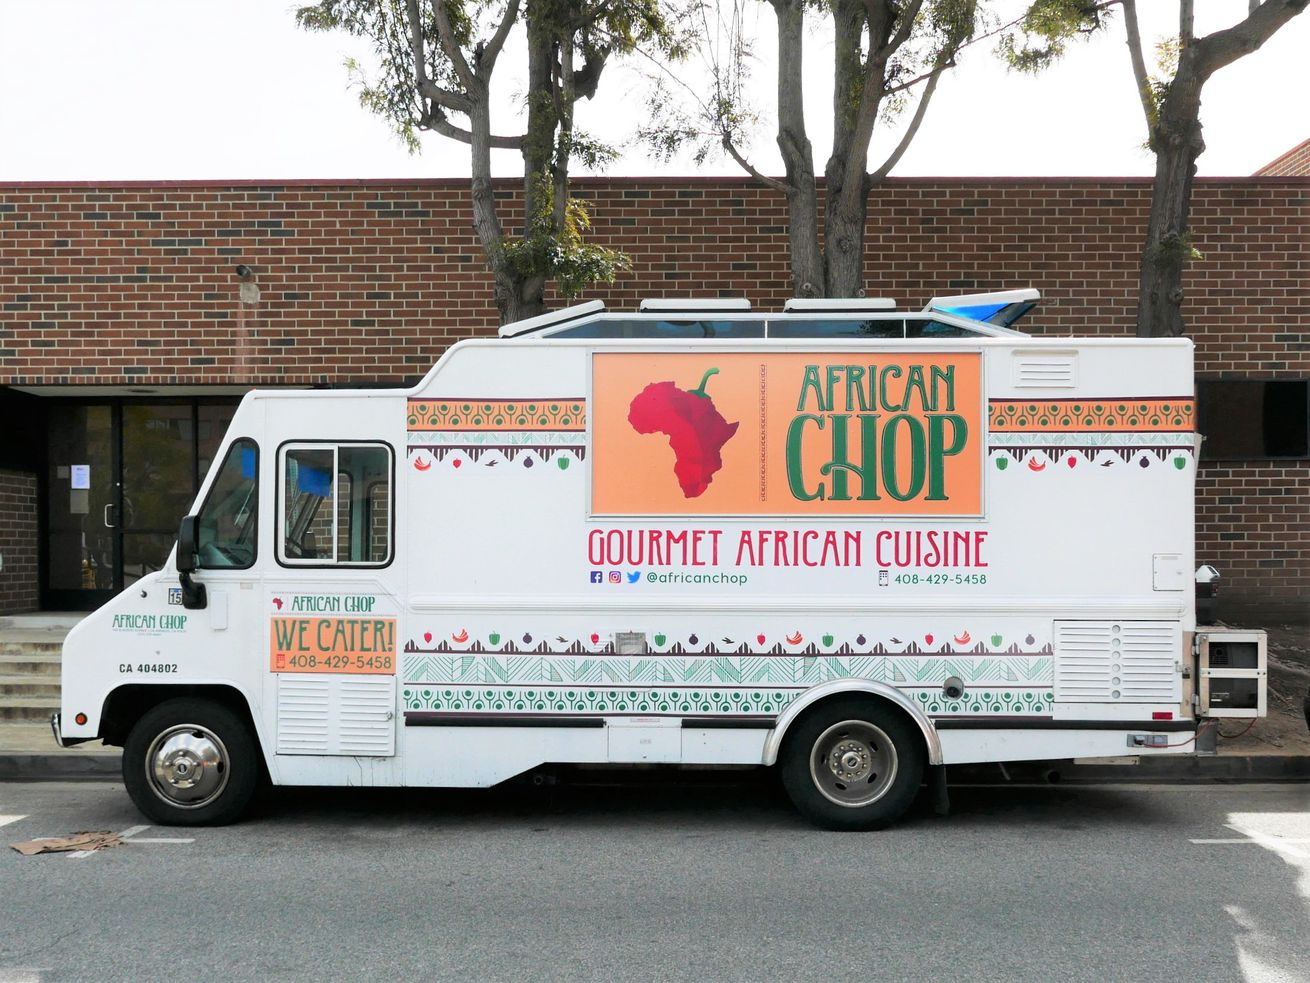 African Chop food truck in Los Angeles